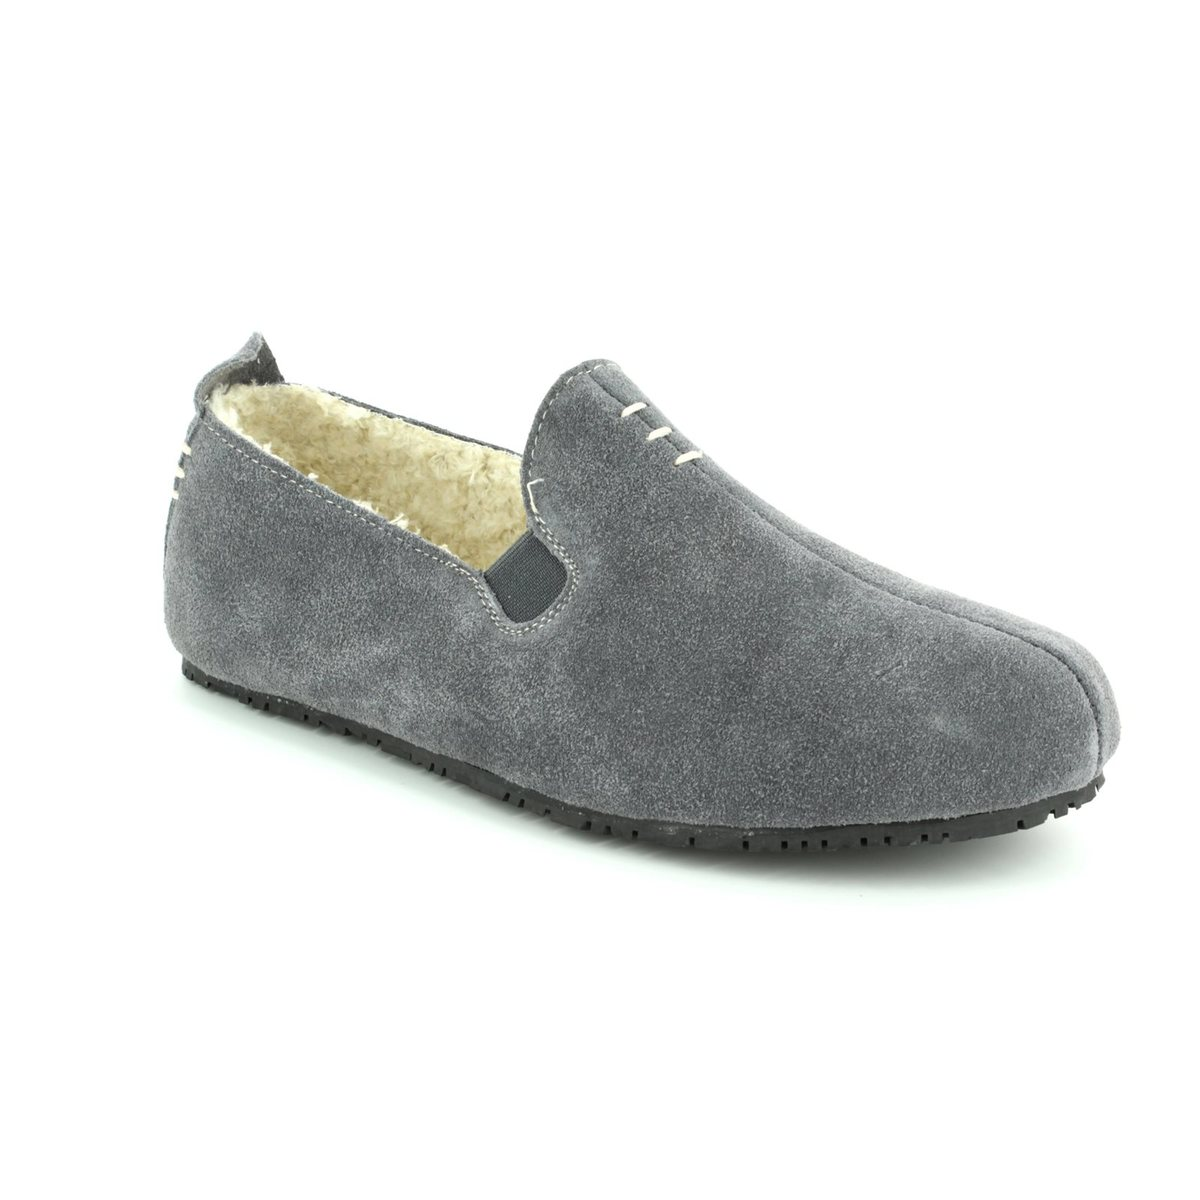 55283b3be30 Clarks Slippers - Grey suede - 3041 37G KITE FALCON